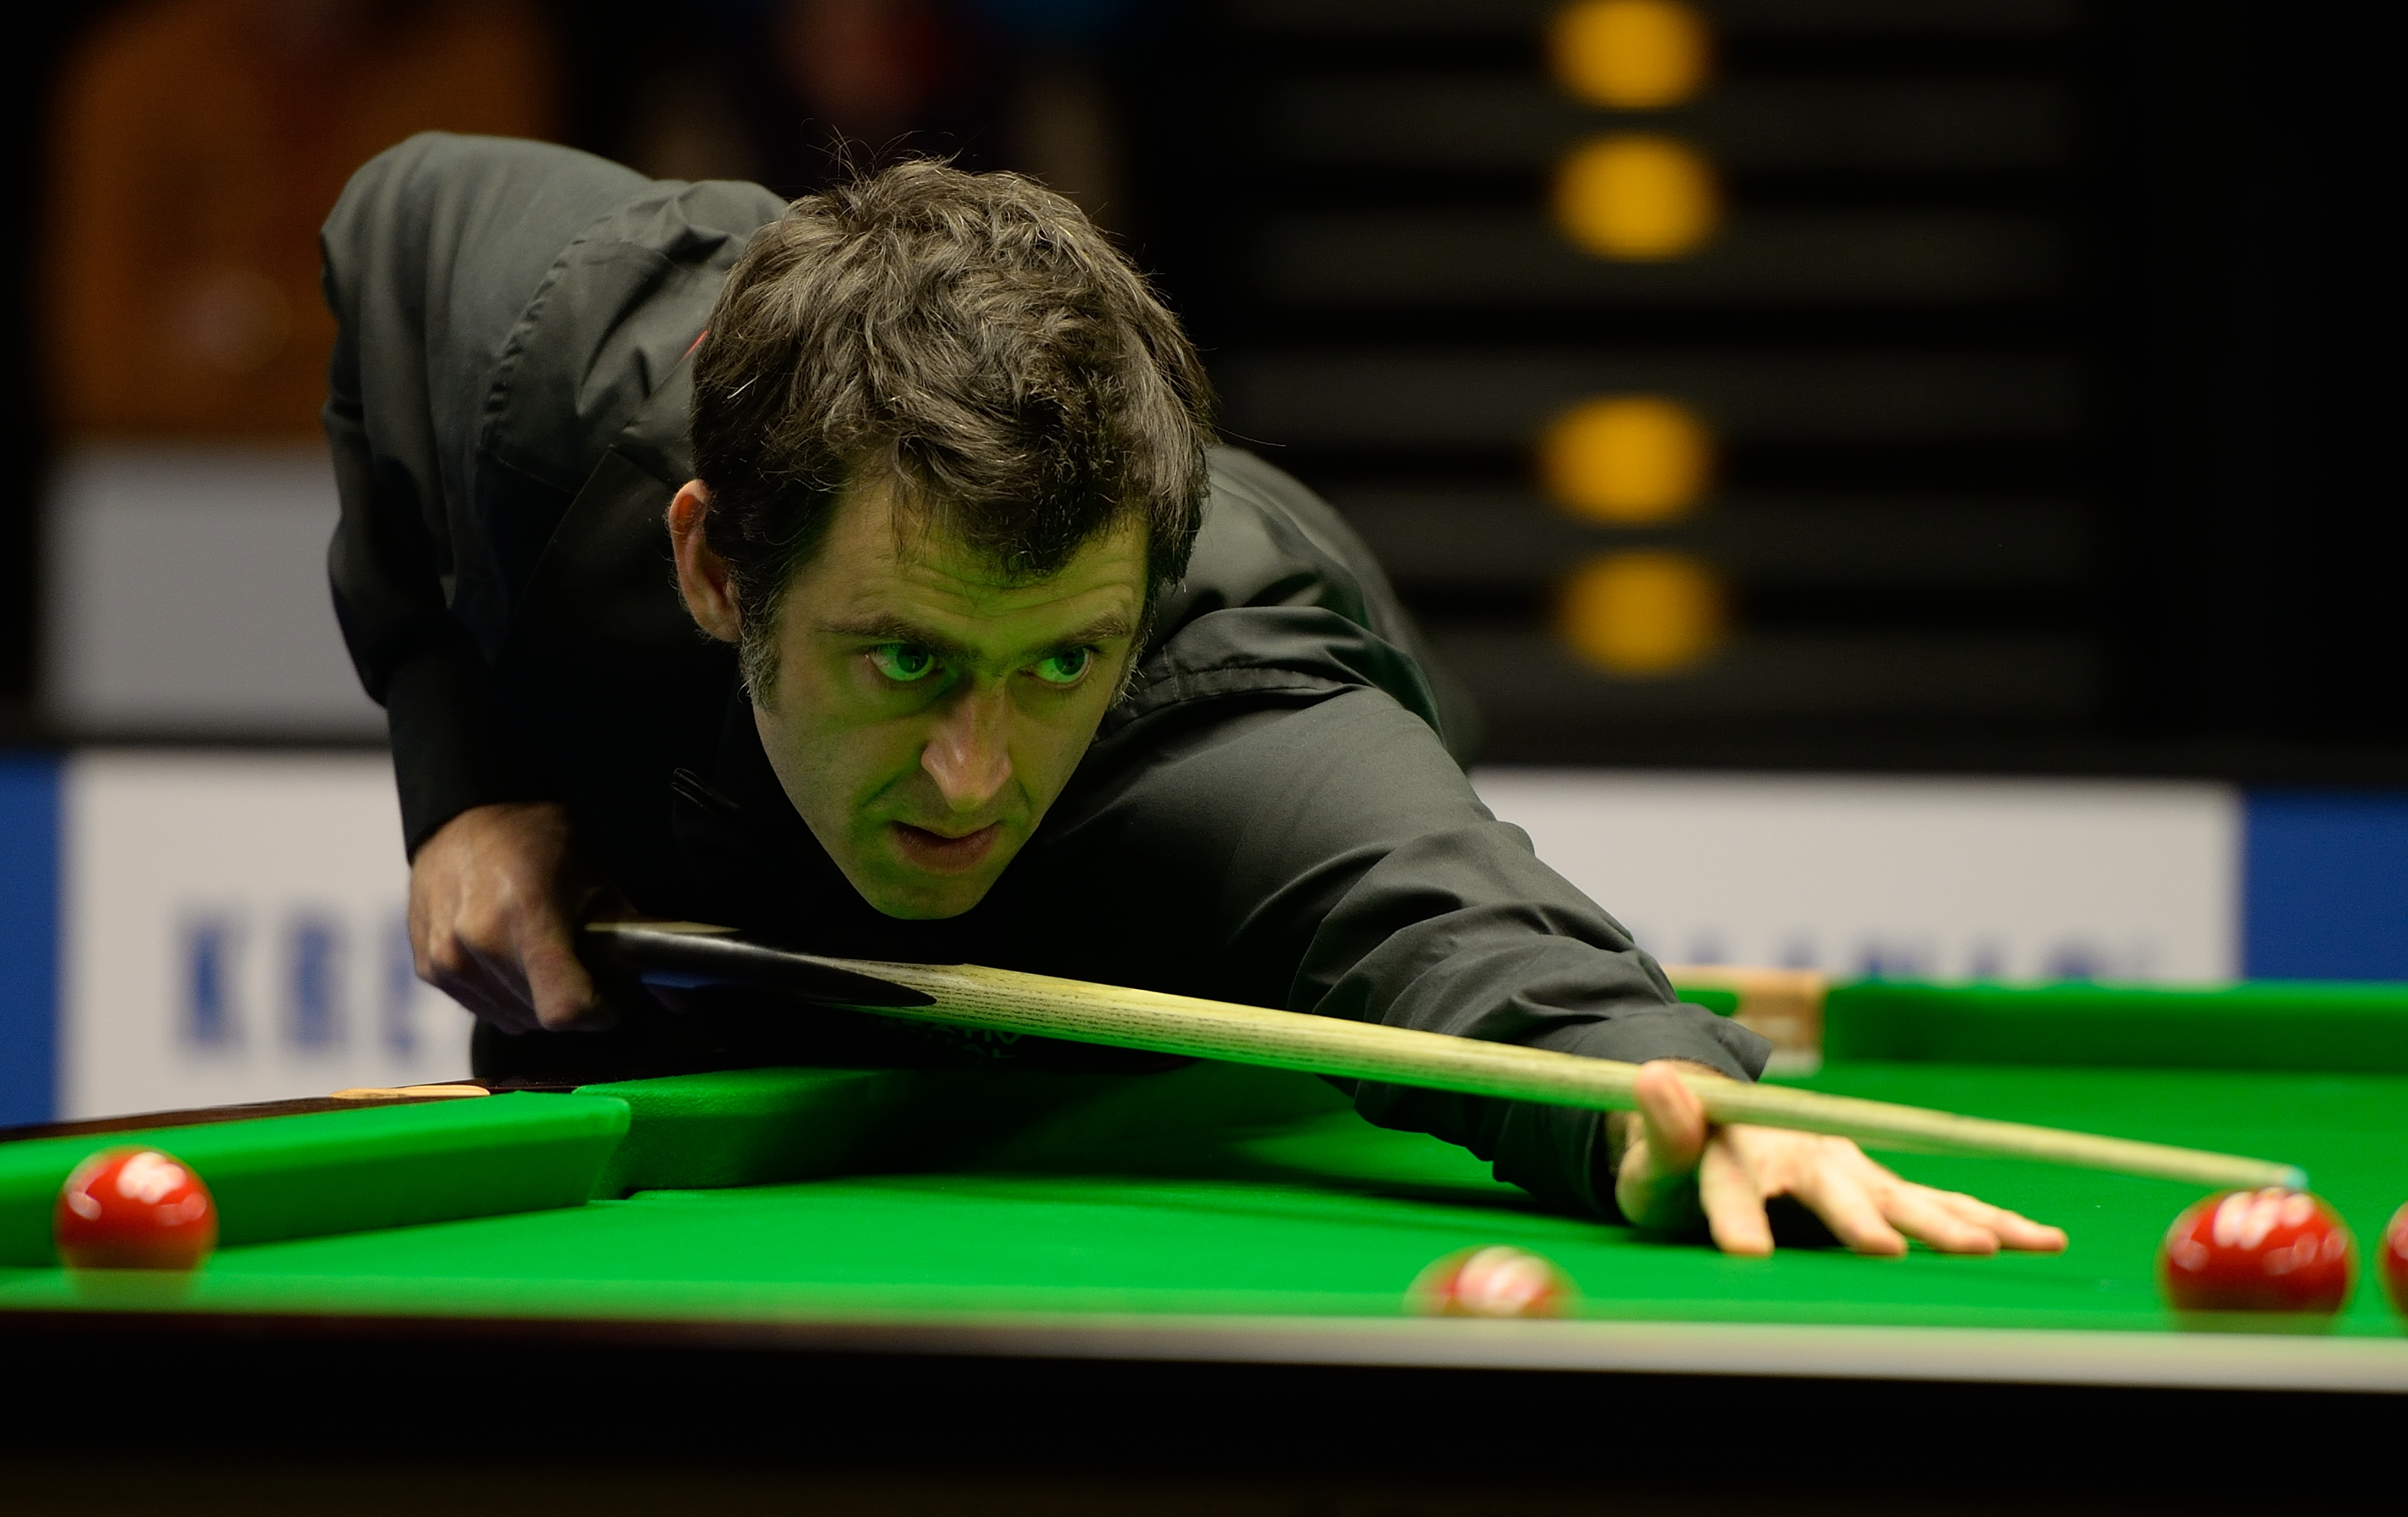 uk championship snooker 2019